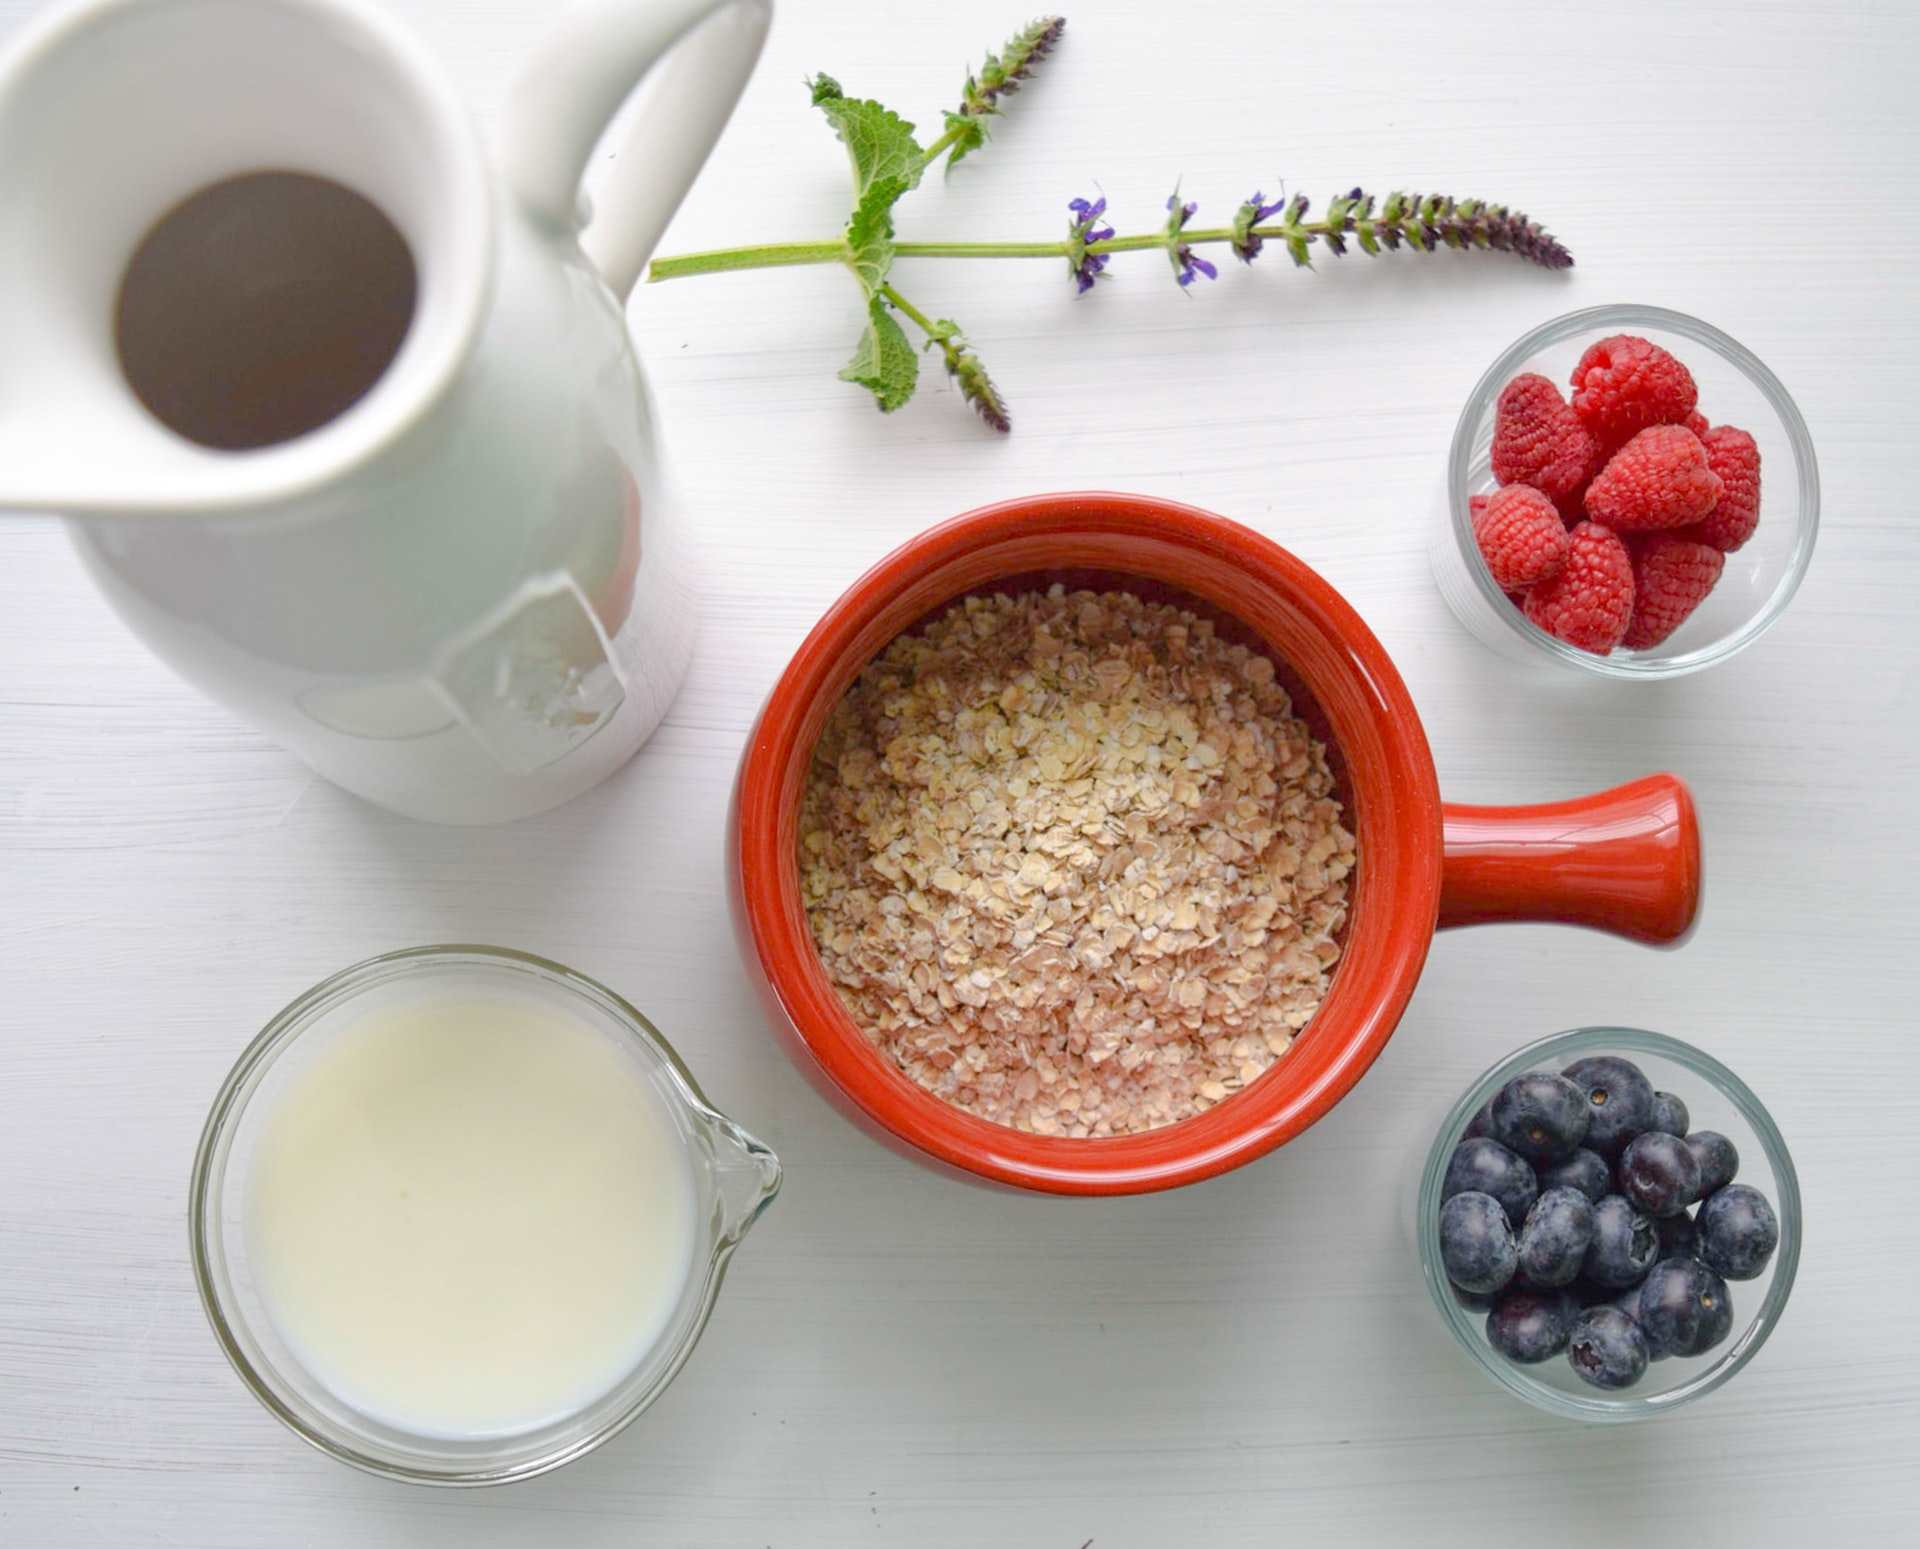 Fat loss meal plan for females - oats